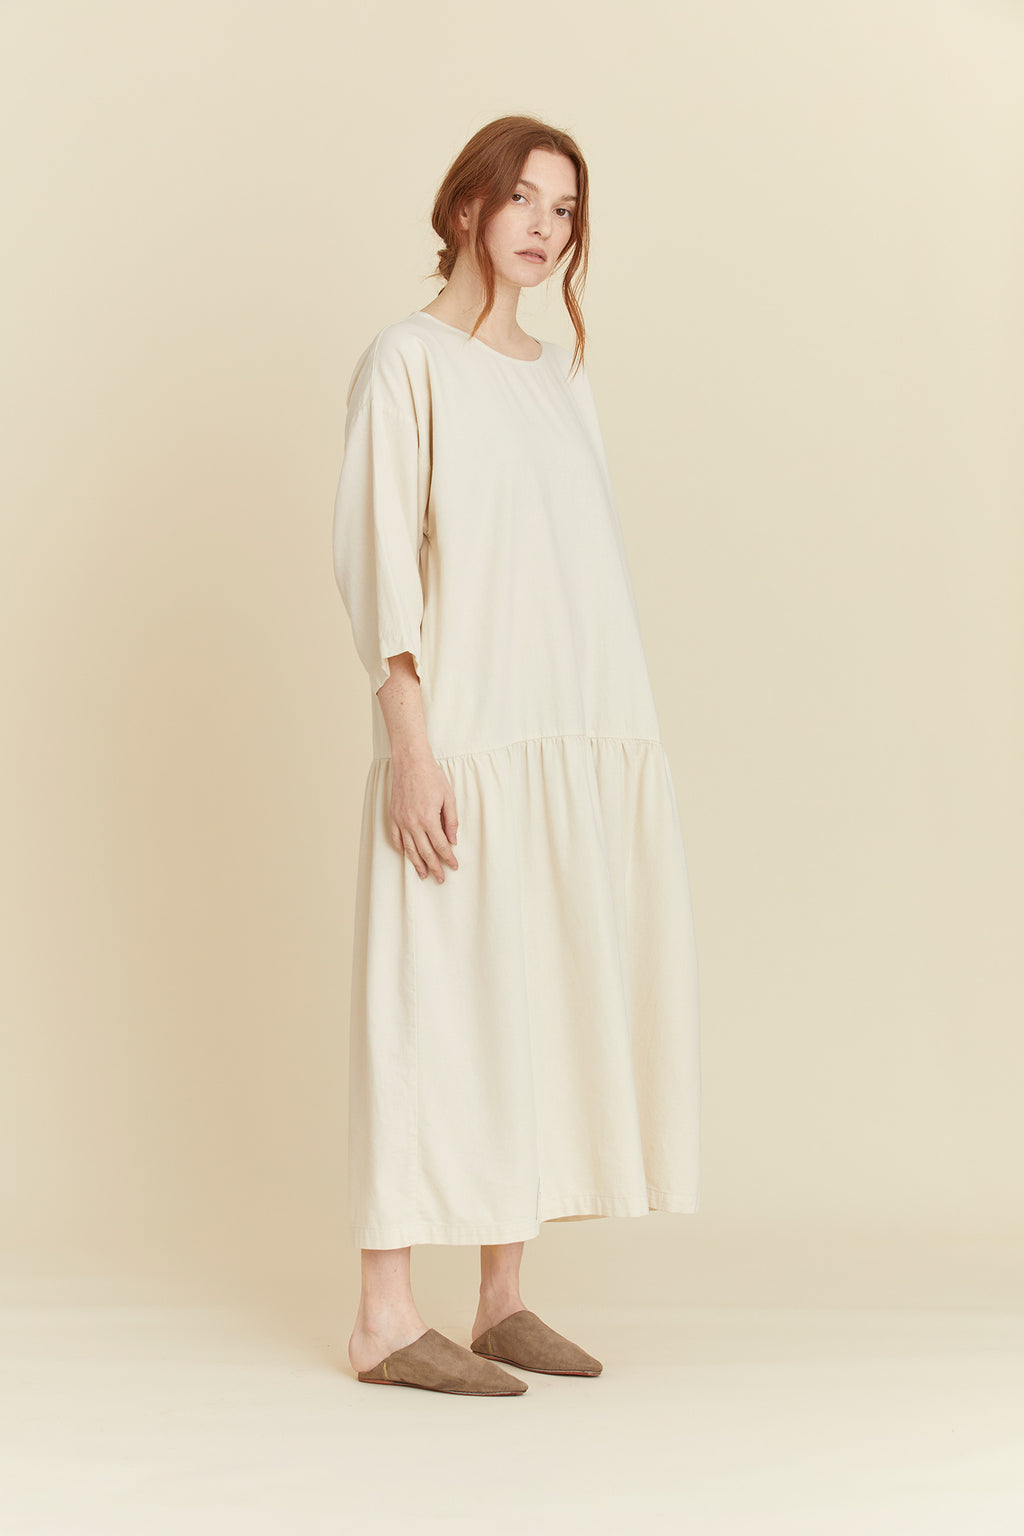 EASY DRESS / LF-ED04 / CREAM